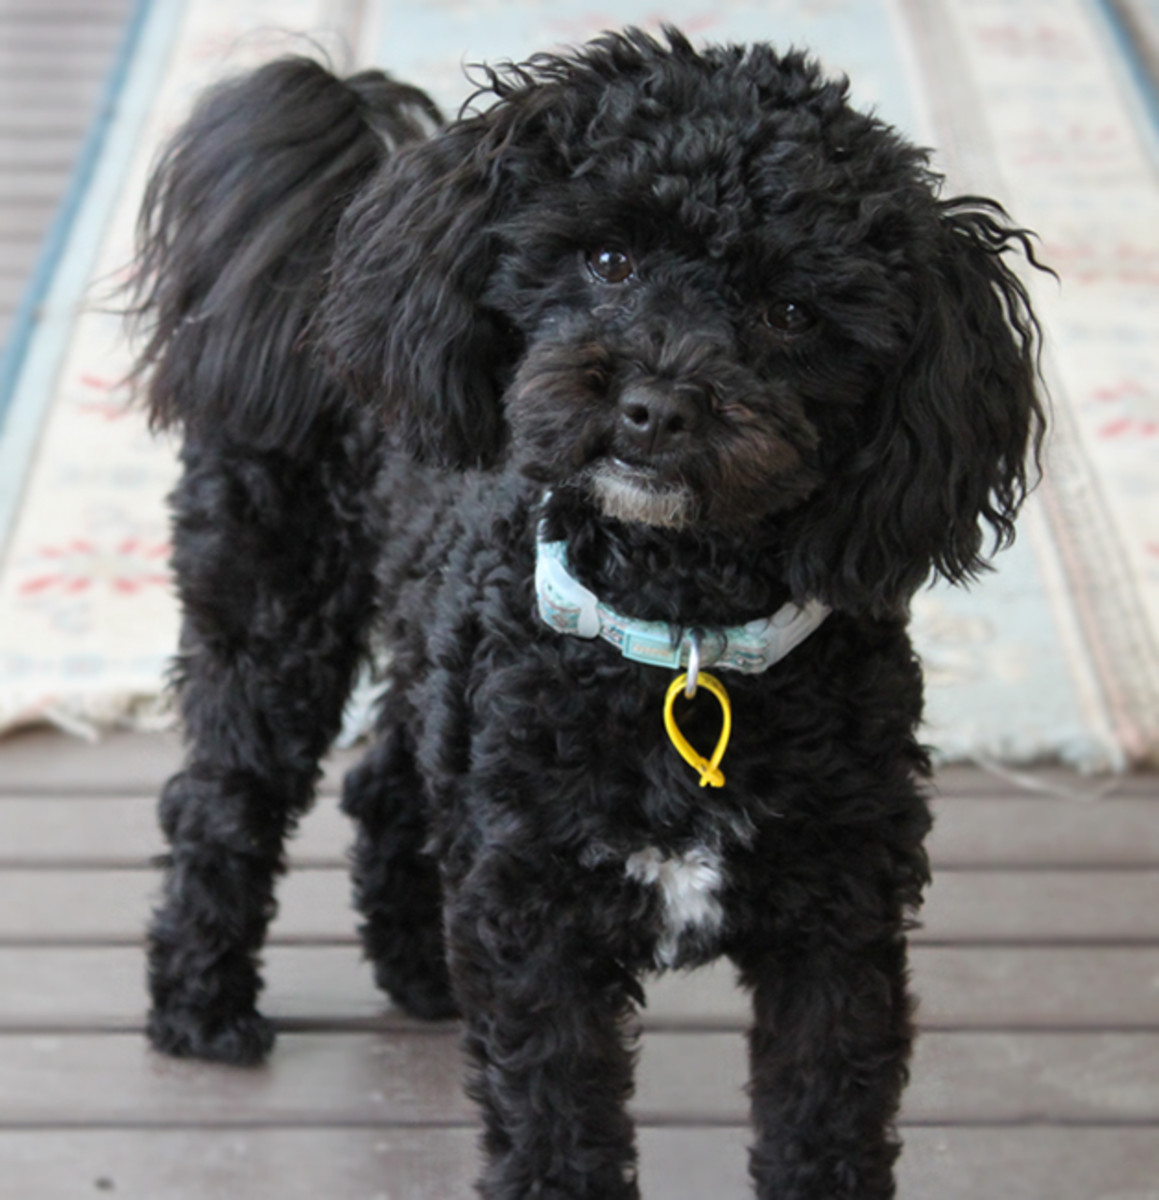 Toy Poodle Shih Tzu Mix Images & Pictures - Becuo